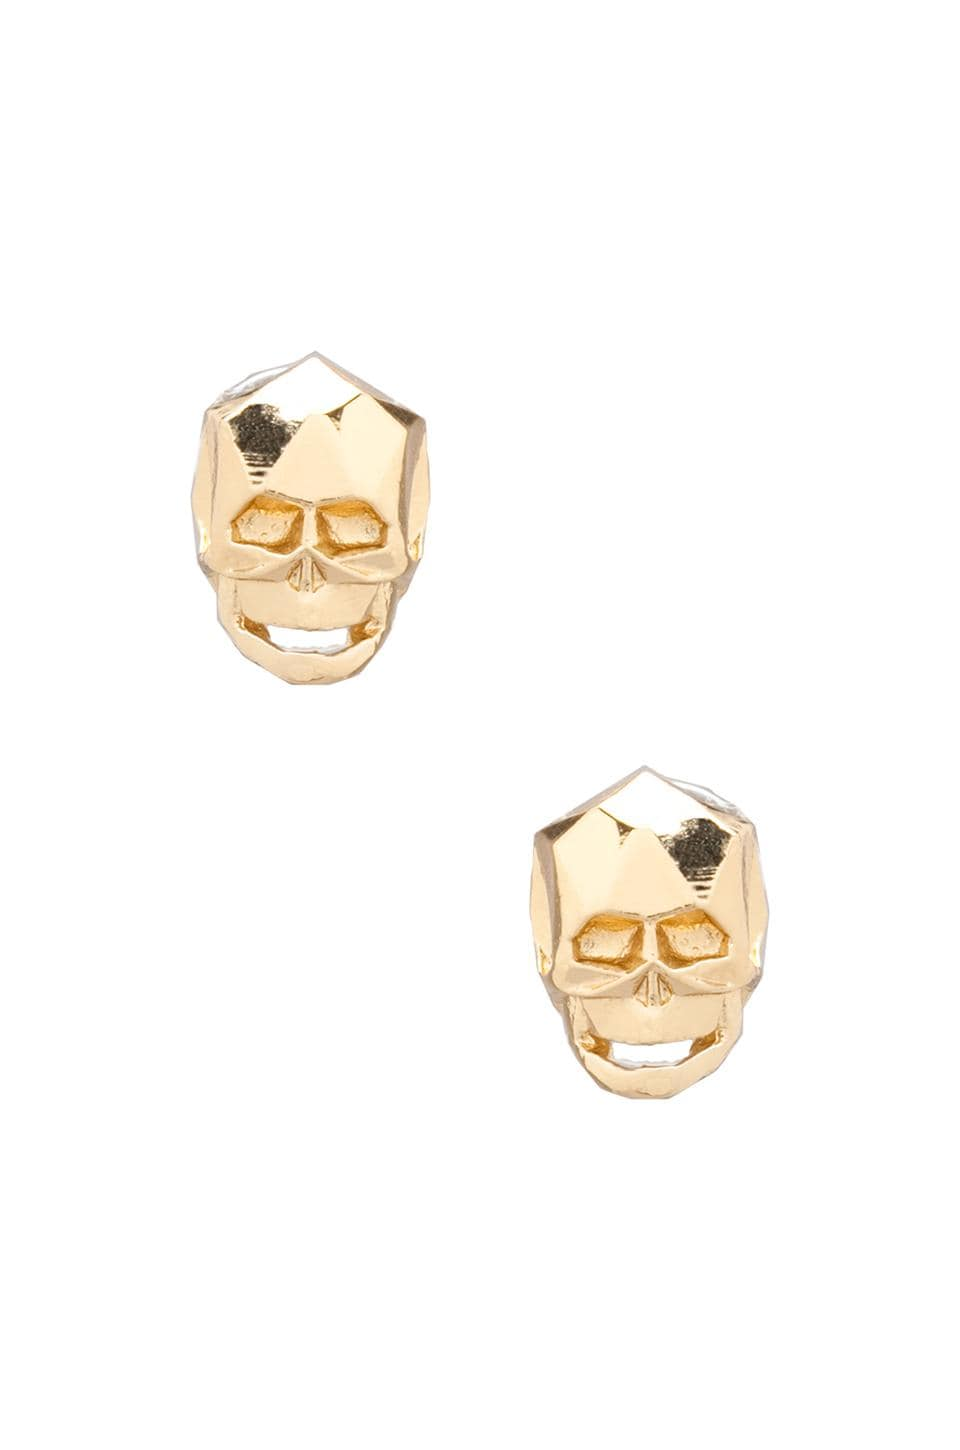 JOOMI LIM Skull Stud Earrings in Gold